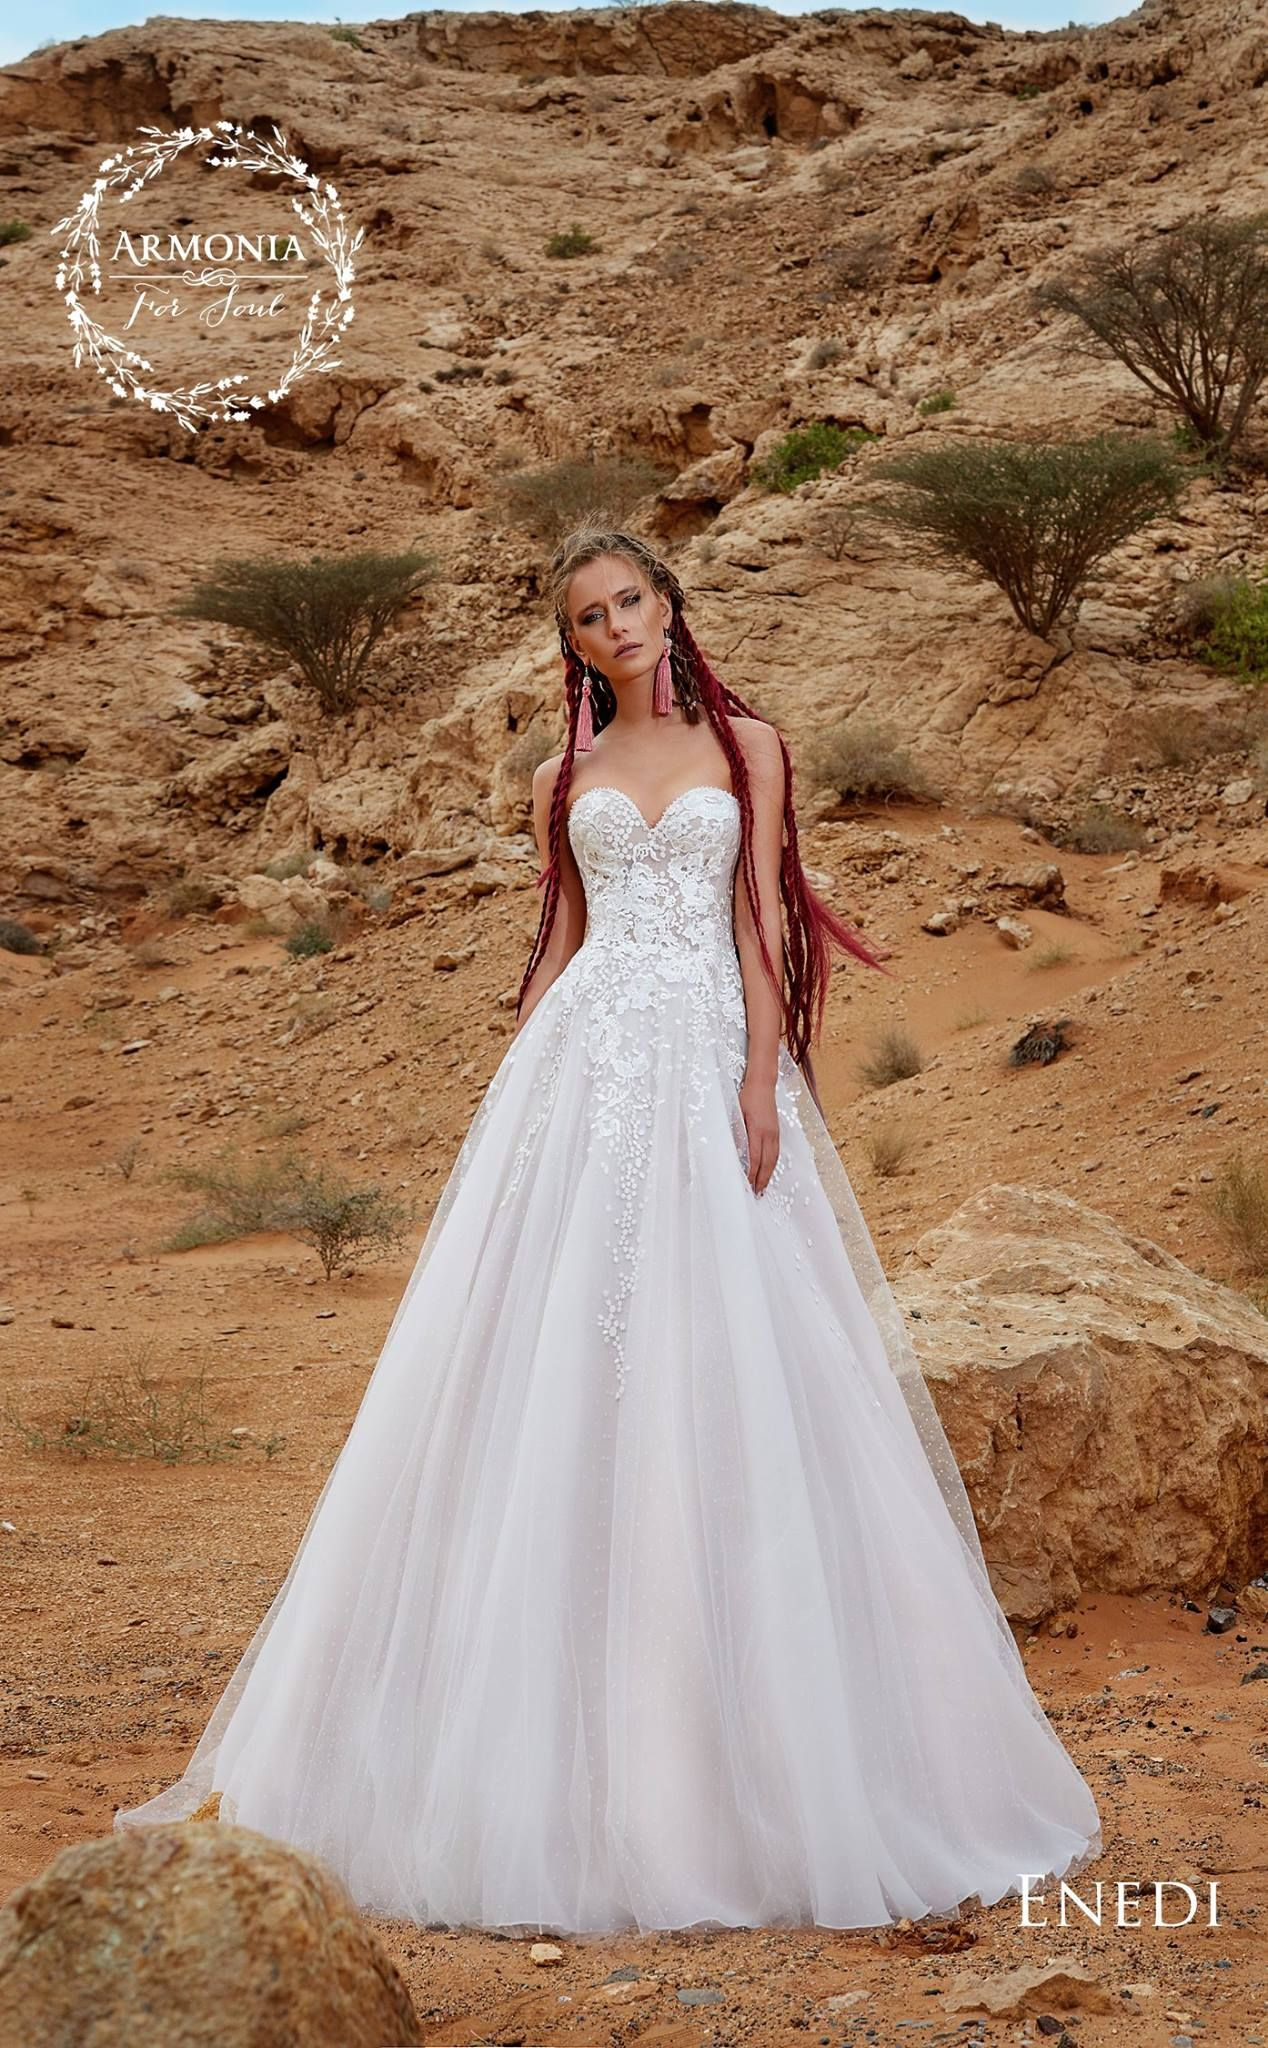 ENEDI wedding dress Collections 2018 by ARMONIA Couture in Charmé ...